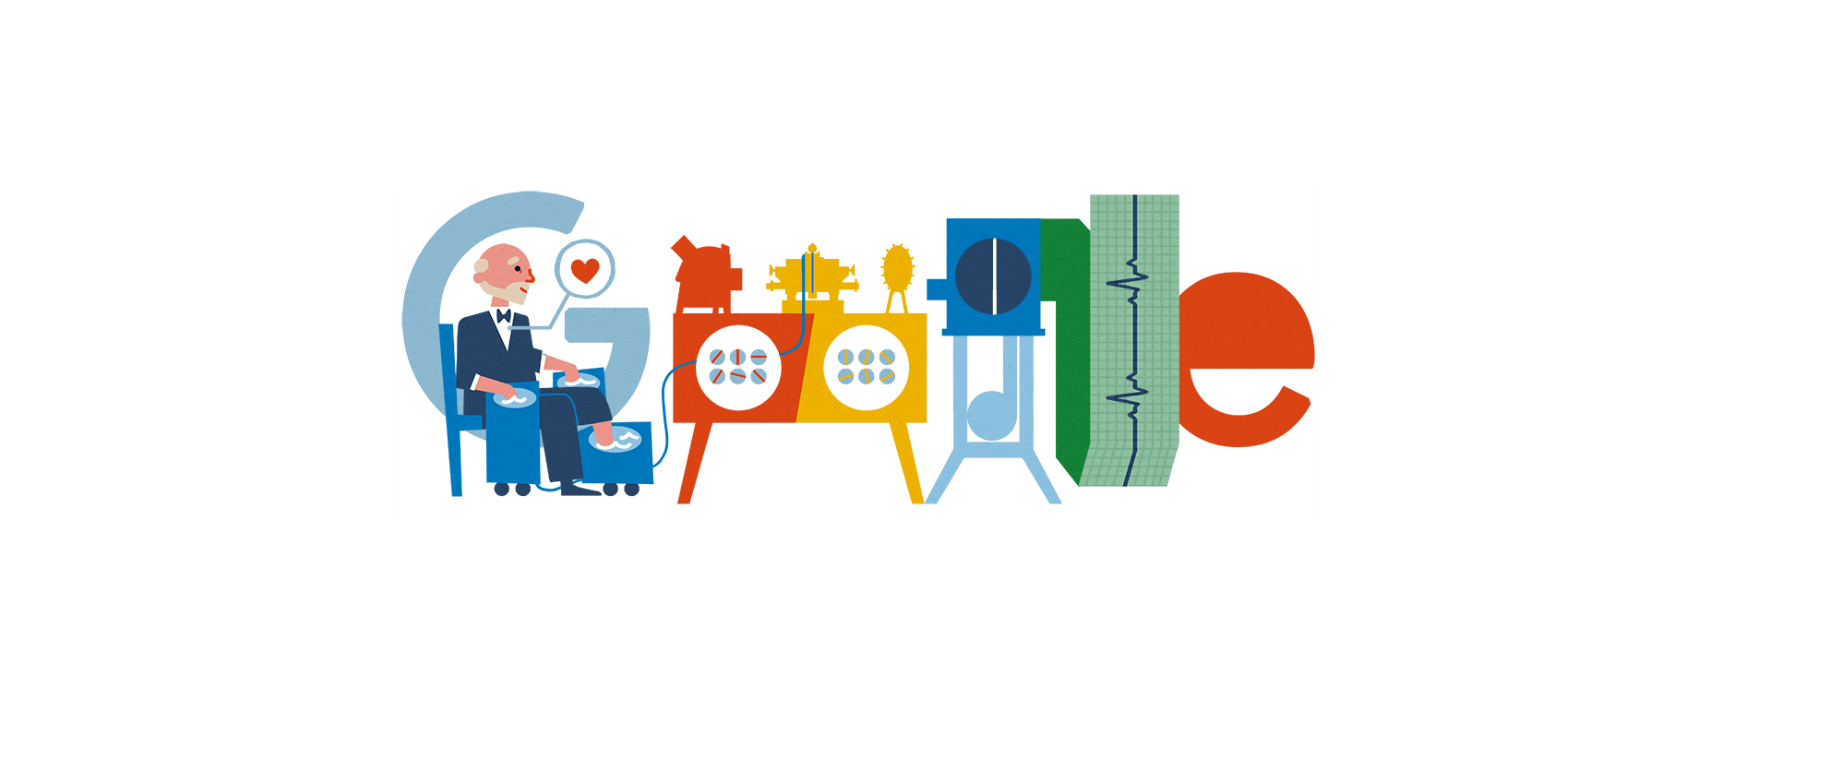 Google Doodle celebrates the birth of Willem Einthoven